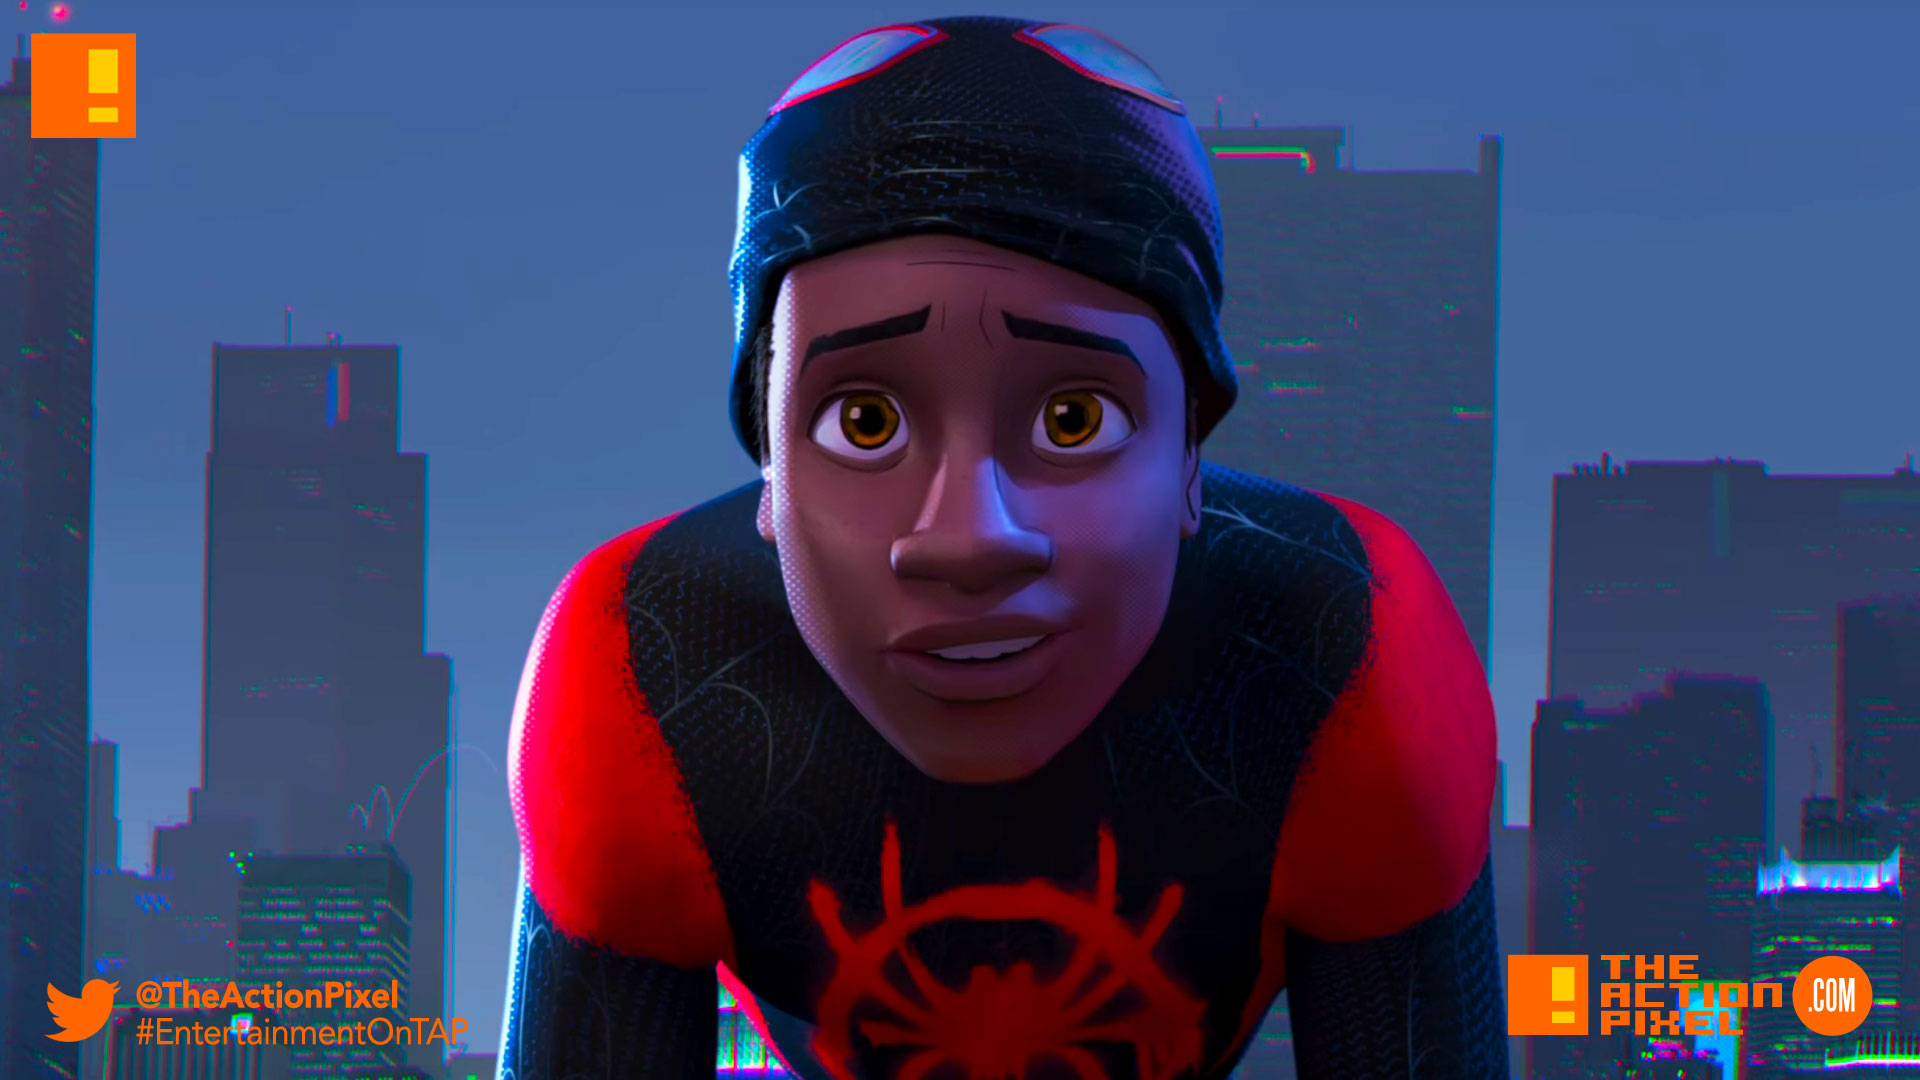 miles morales, spiderman, spider man, spider-man, sony, marvel, marvel comics, animated feature, animation, the action pixel, entertainment on tap,sony animation, marvel